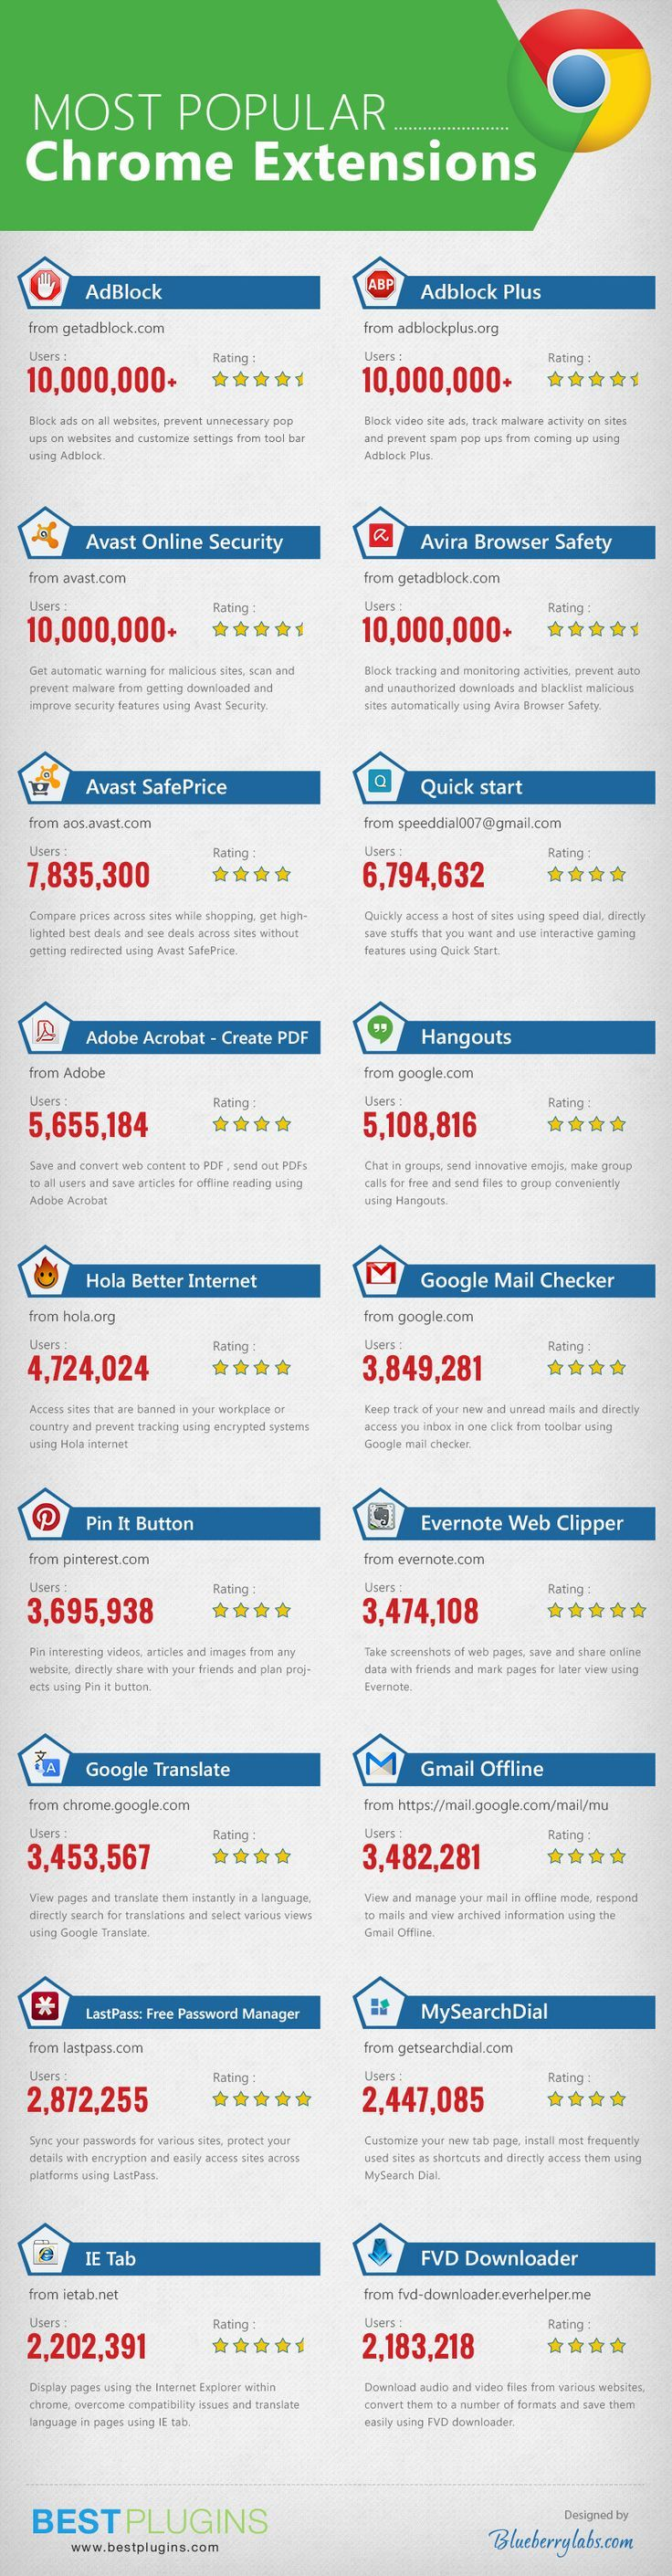 Most Popular Google Chrome Extensions #infographic #GoogleChrome #Extensions